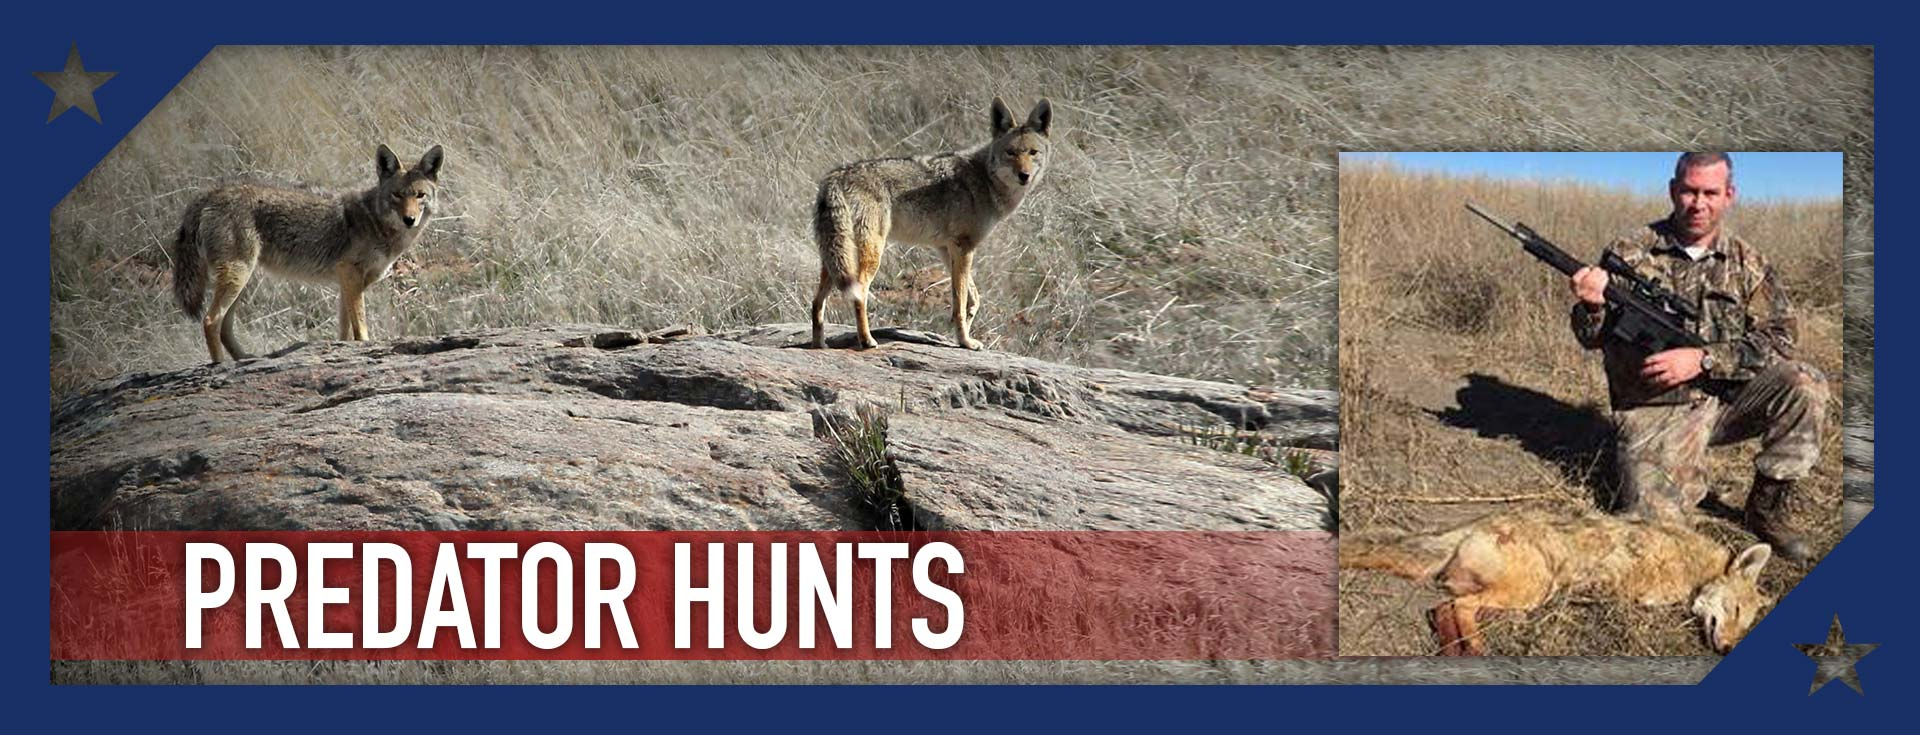 Coyotes, Foxes, Mountian Lions and More